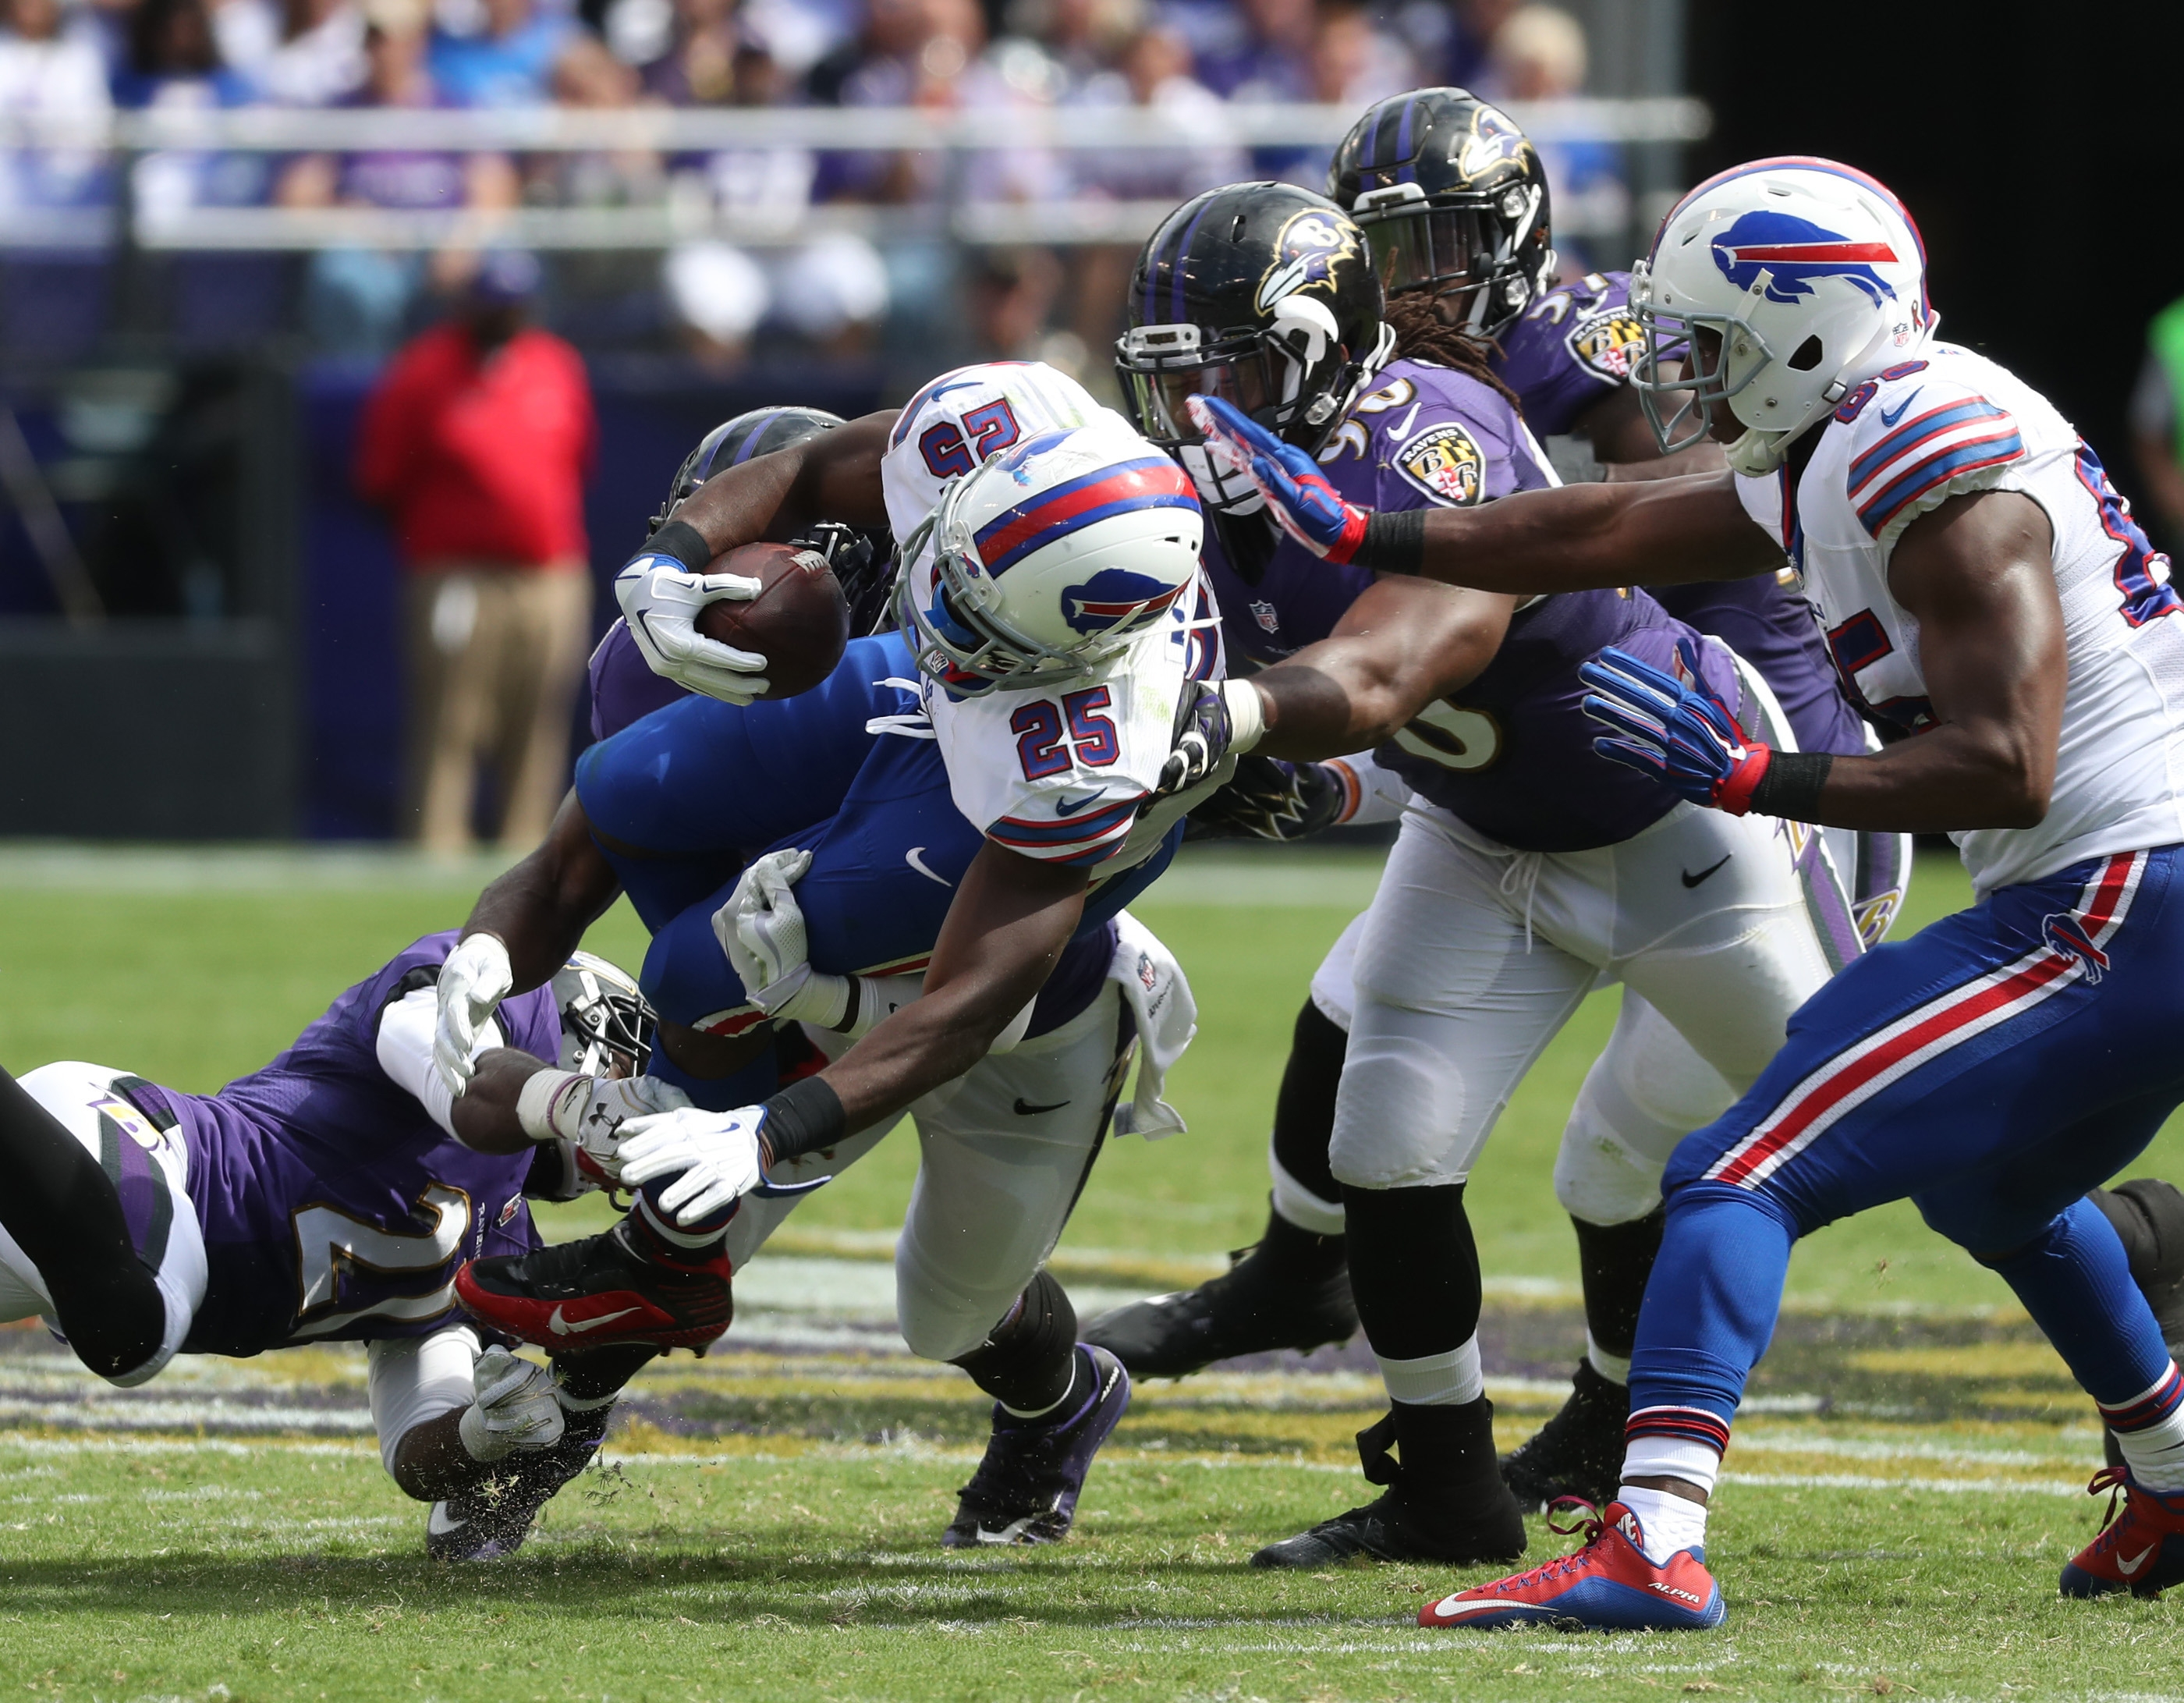 LeSean McCoy (25) is tackled by Baltimore Ravens cornerback Kyle Arrington (24) for a loss in the third quarter.